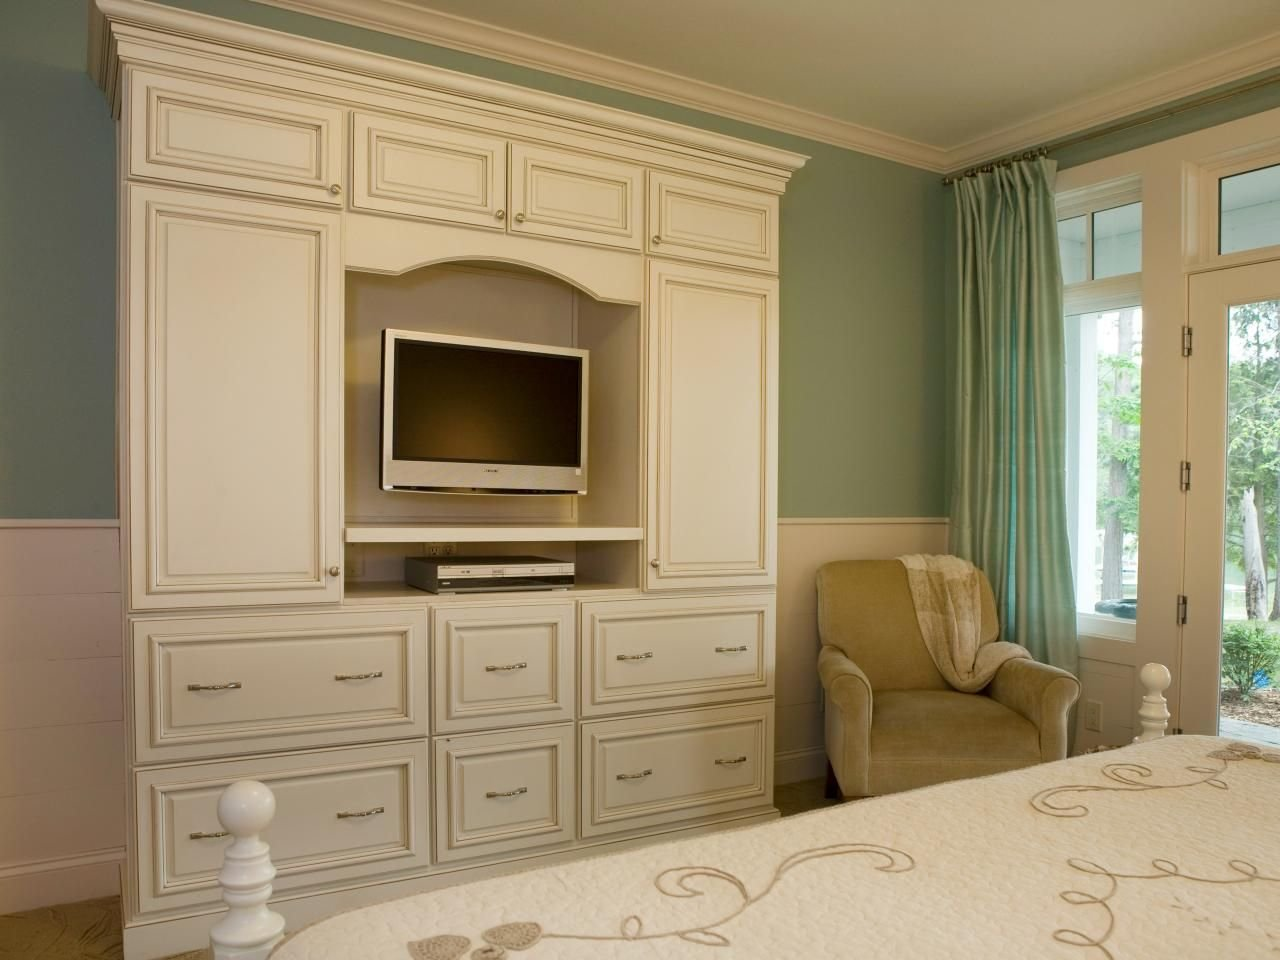 Best The Elegant White Armoire Provides Functional Storage And With Pictures